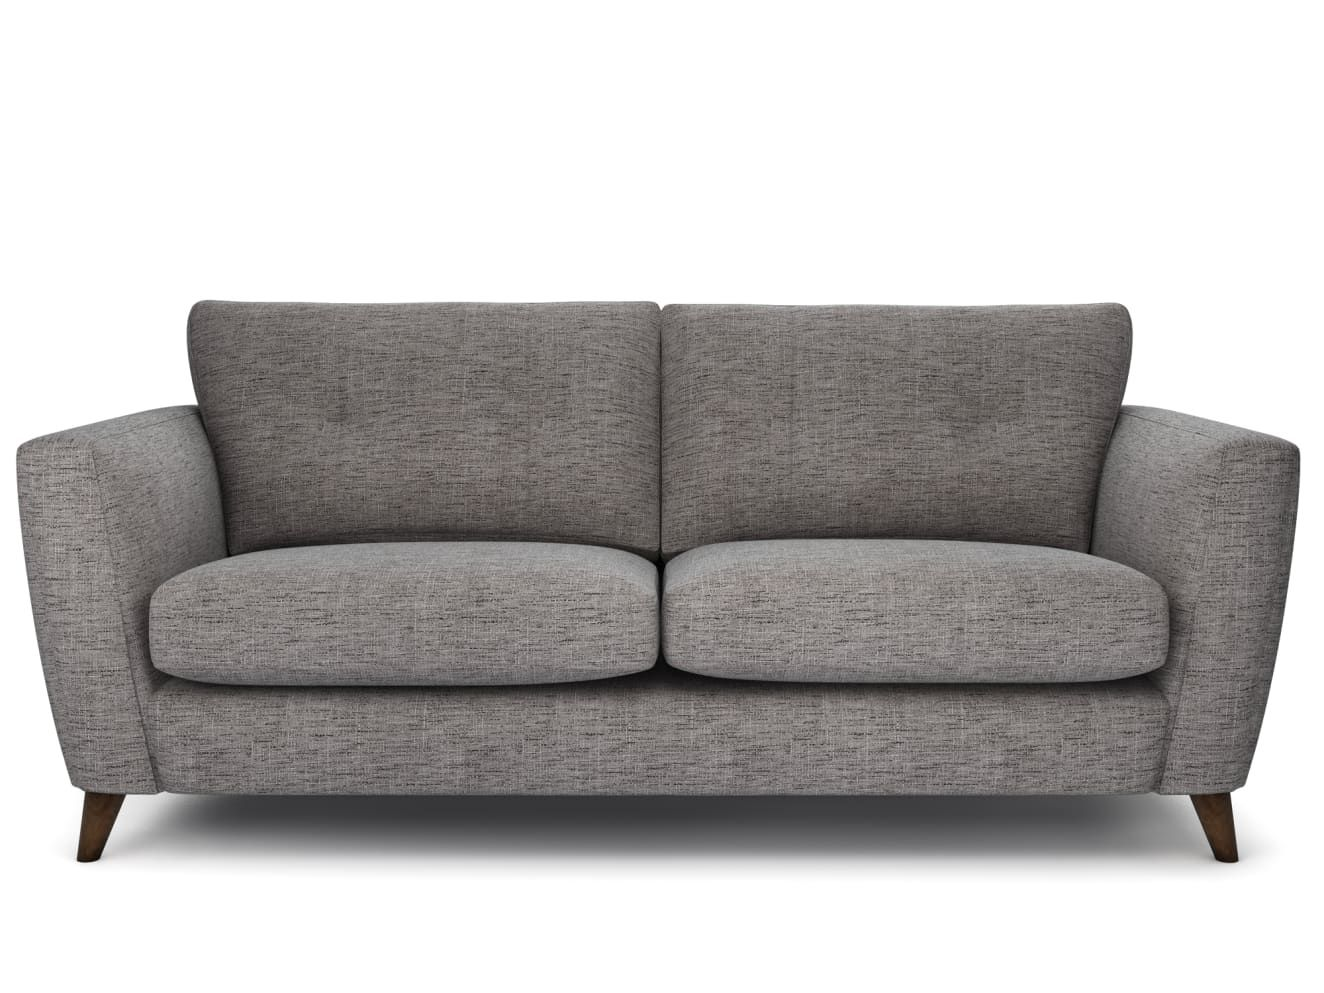 A Modern Sofa Range With Contemporary Design Features Such As Twin Needling And Gently Pulled